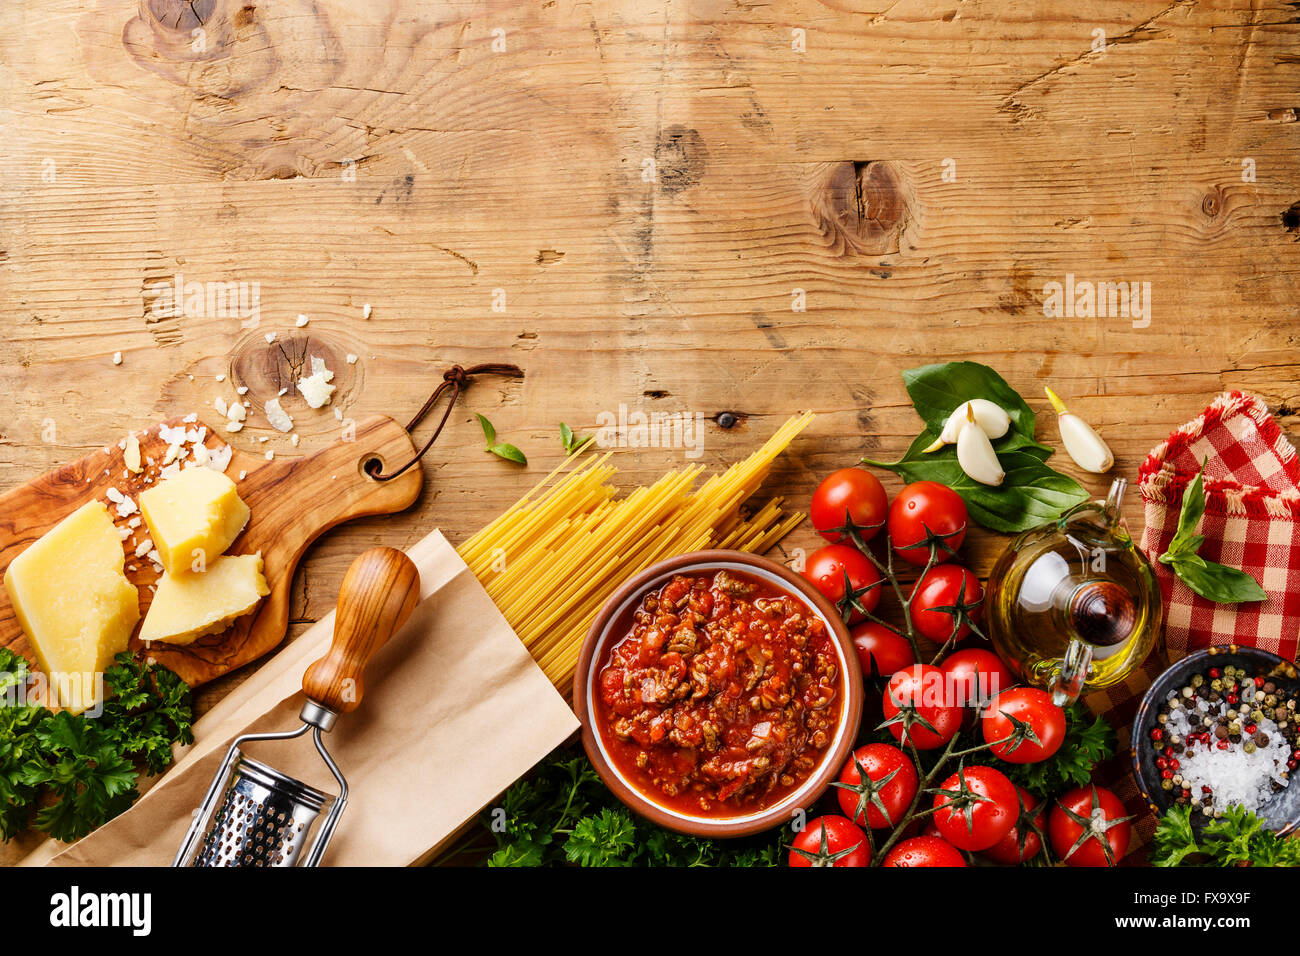 Italian Food Background With Spaghetti Bolognese